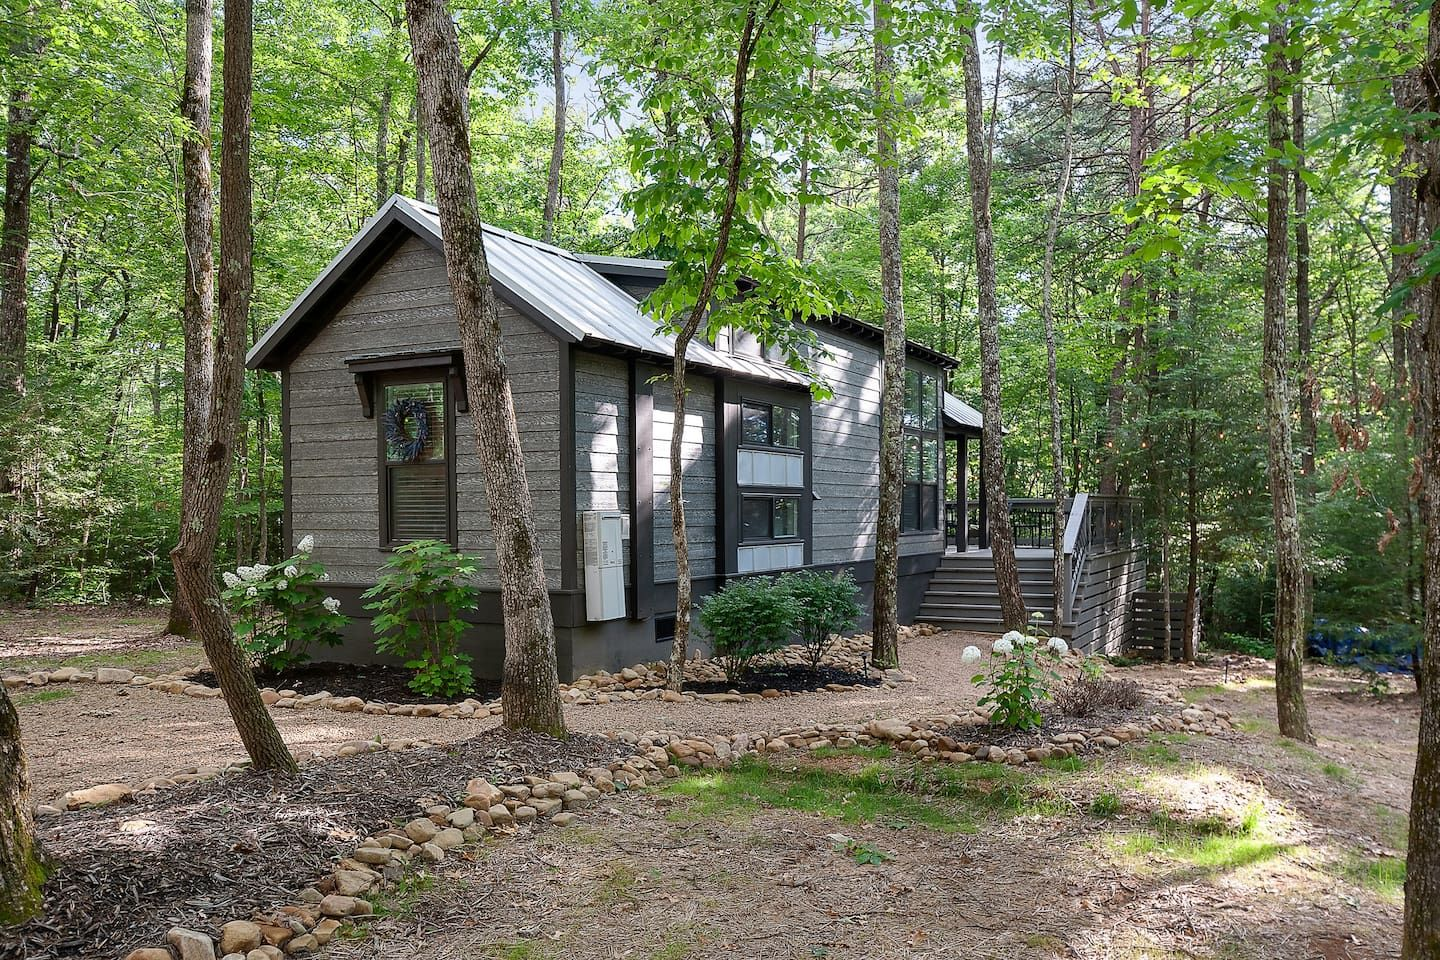 Everly House A Tn Mountain Retreat Tiny Houses For Rent In Monteagle Tennessee United States Tiny Houses For Rent Mountain Retreat Tiny House